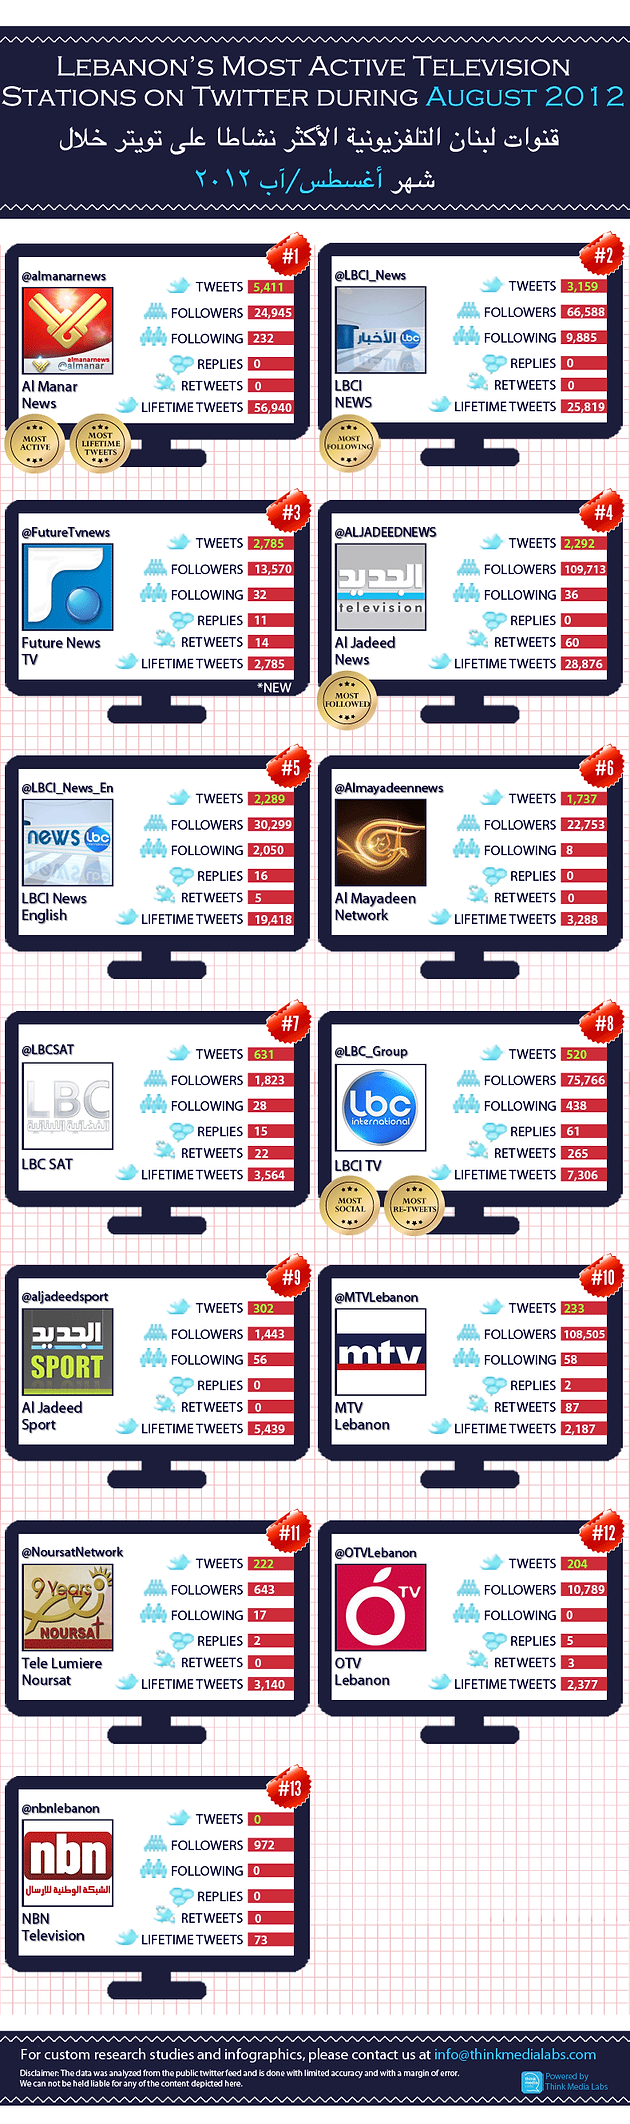 Lebanese TV Stations on Twitter Infographic: TVs Gone Social!